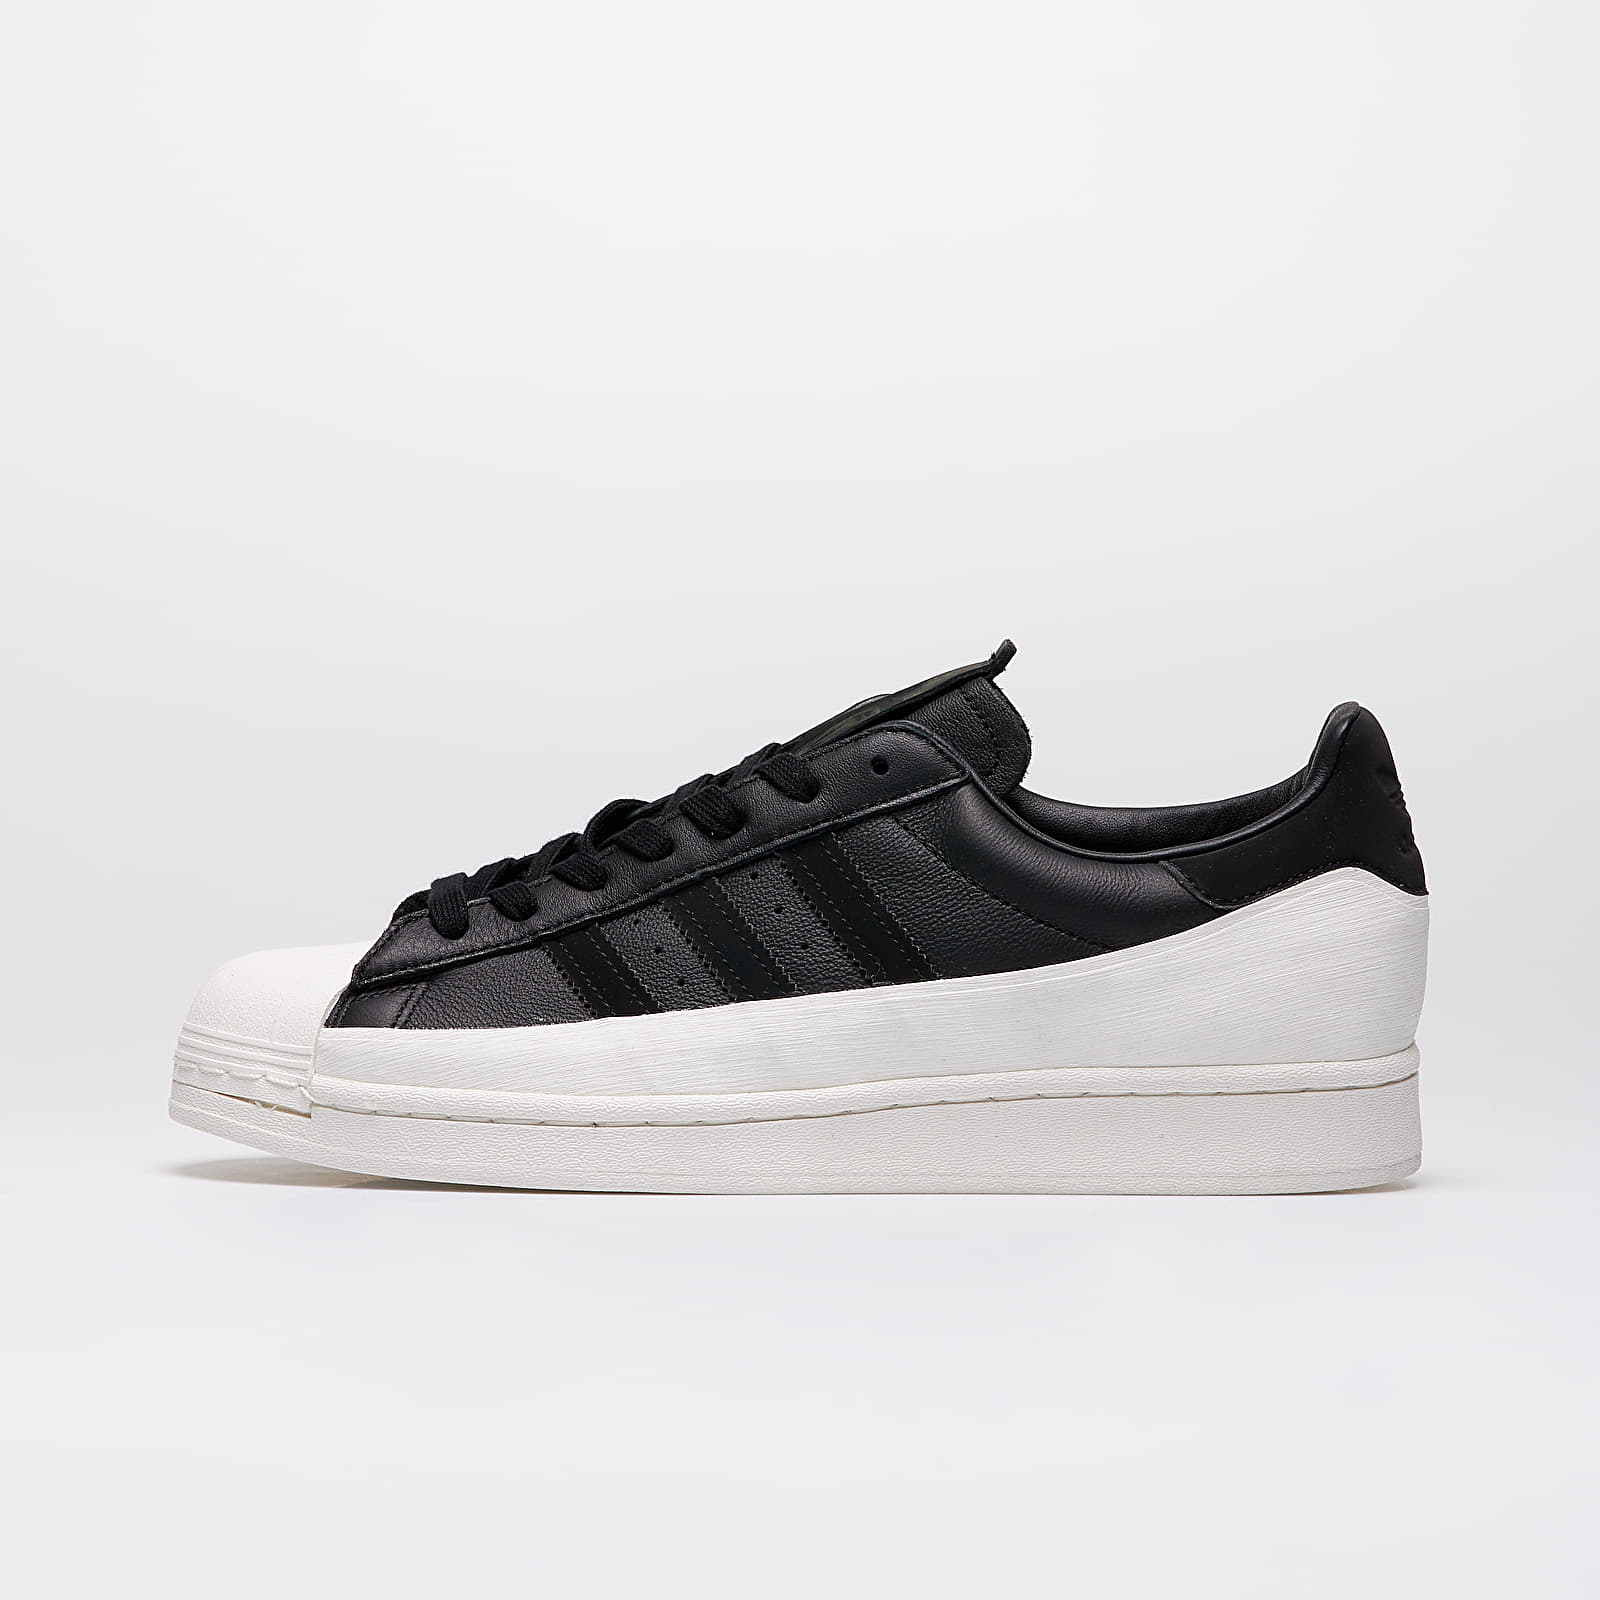 Zapatillas Hombre adidas Superstar Mg Core Black/ Off White/ Core Black